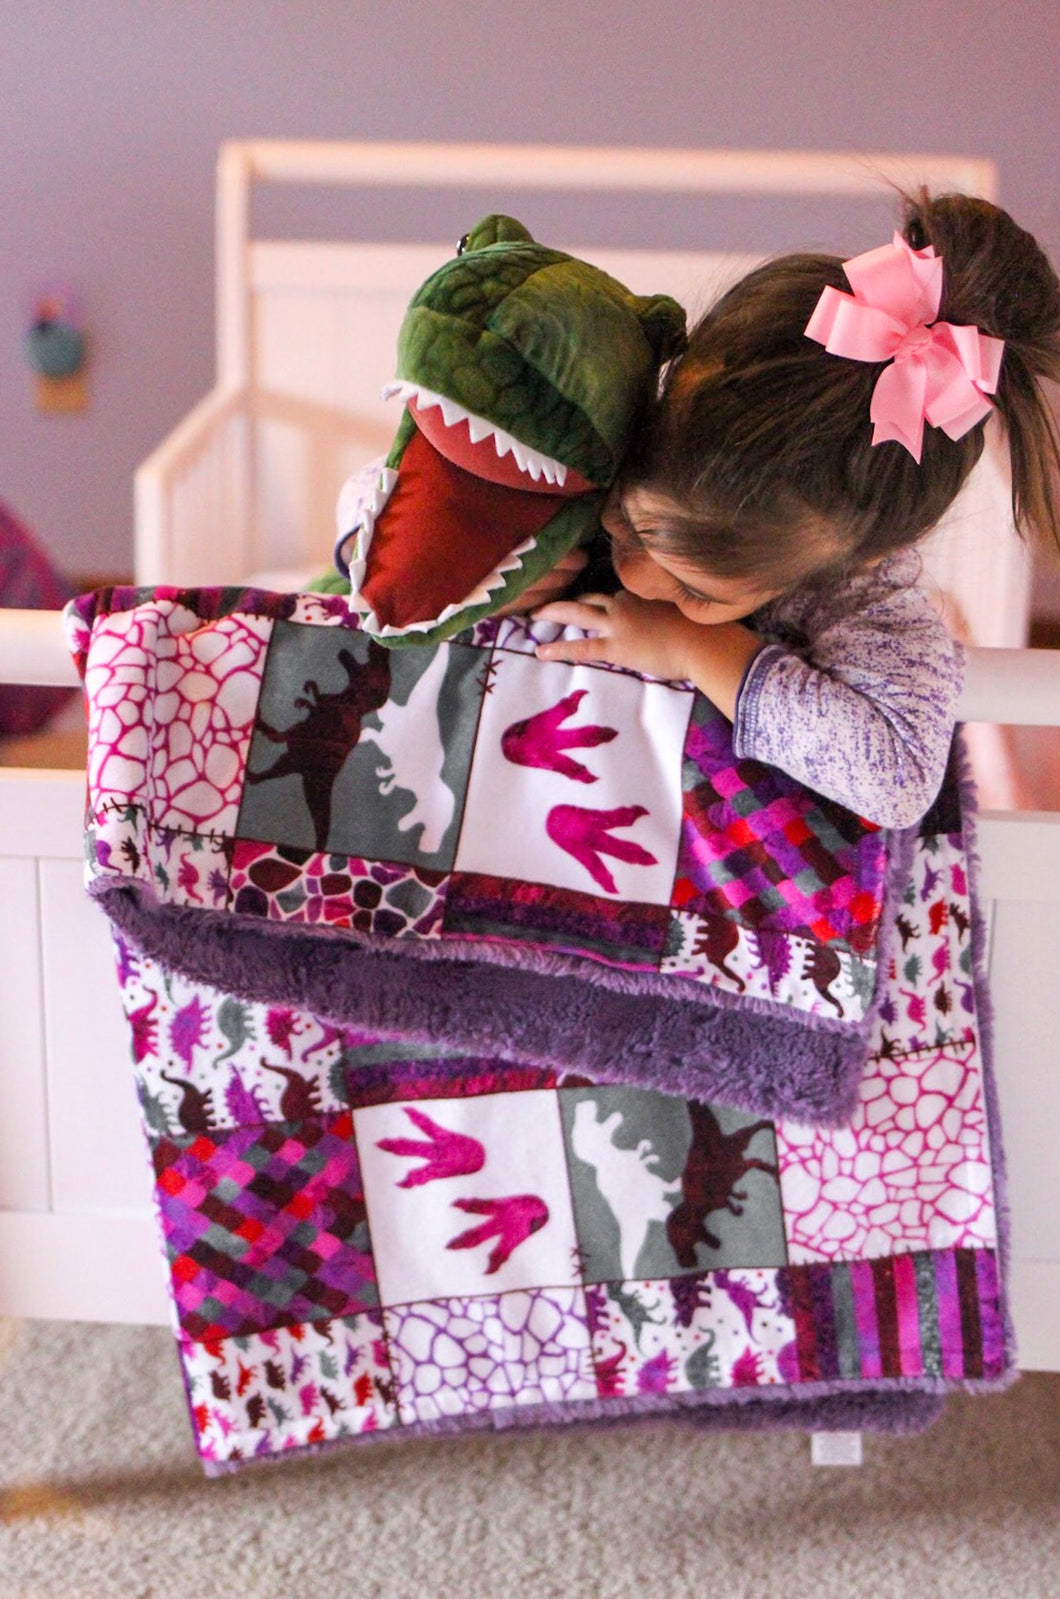 Personalized Dinosaur Patchwork - Pink Version - The Snuggly Geekling